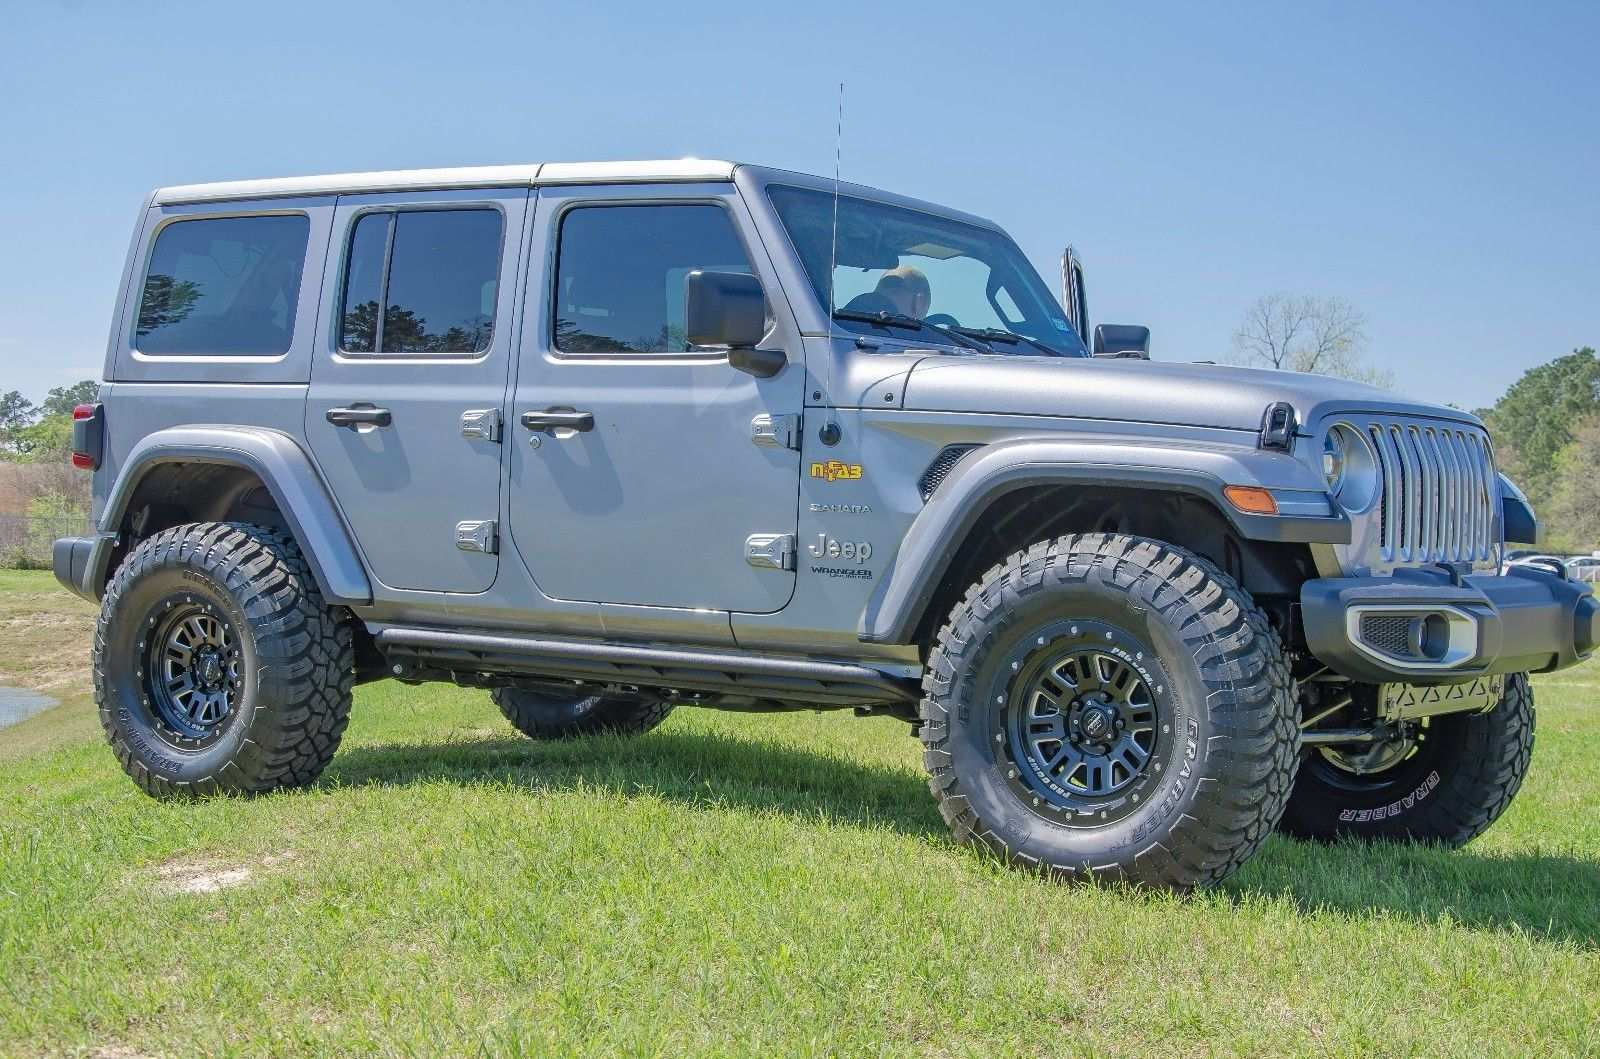 75 All New 2019 Jeep Wrangler 4 Door Release Date for 2019 Jeep Wrangler 4 Door